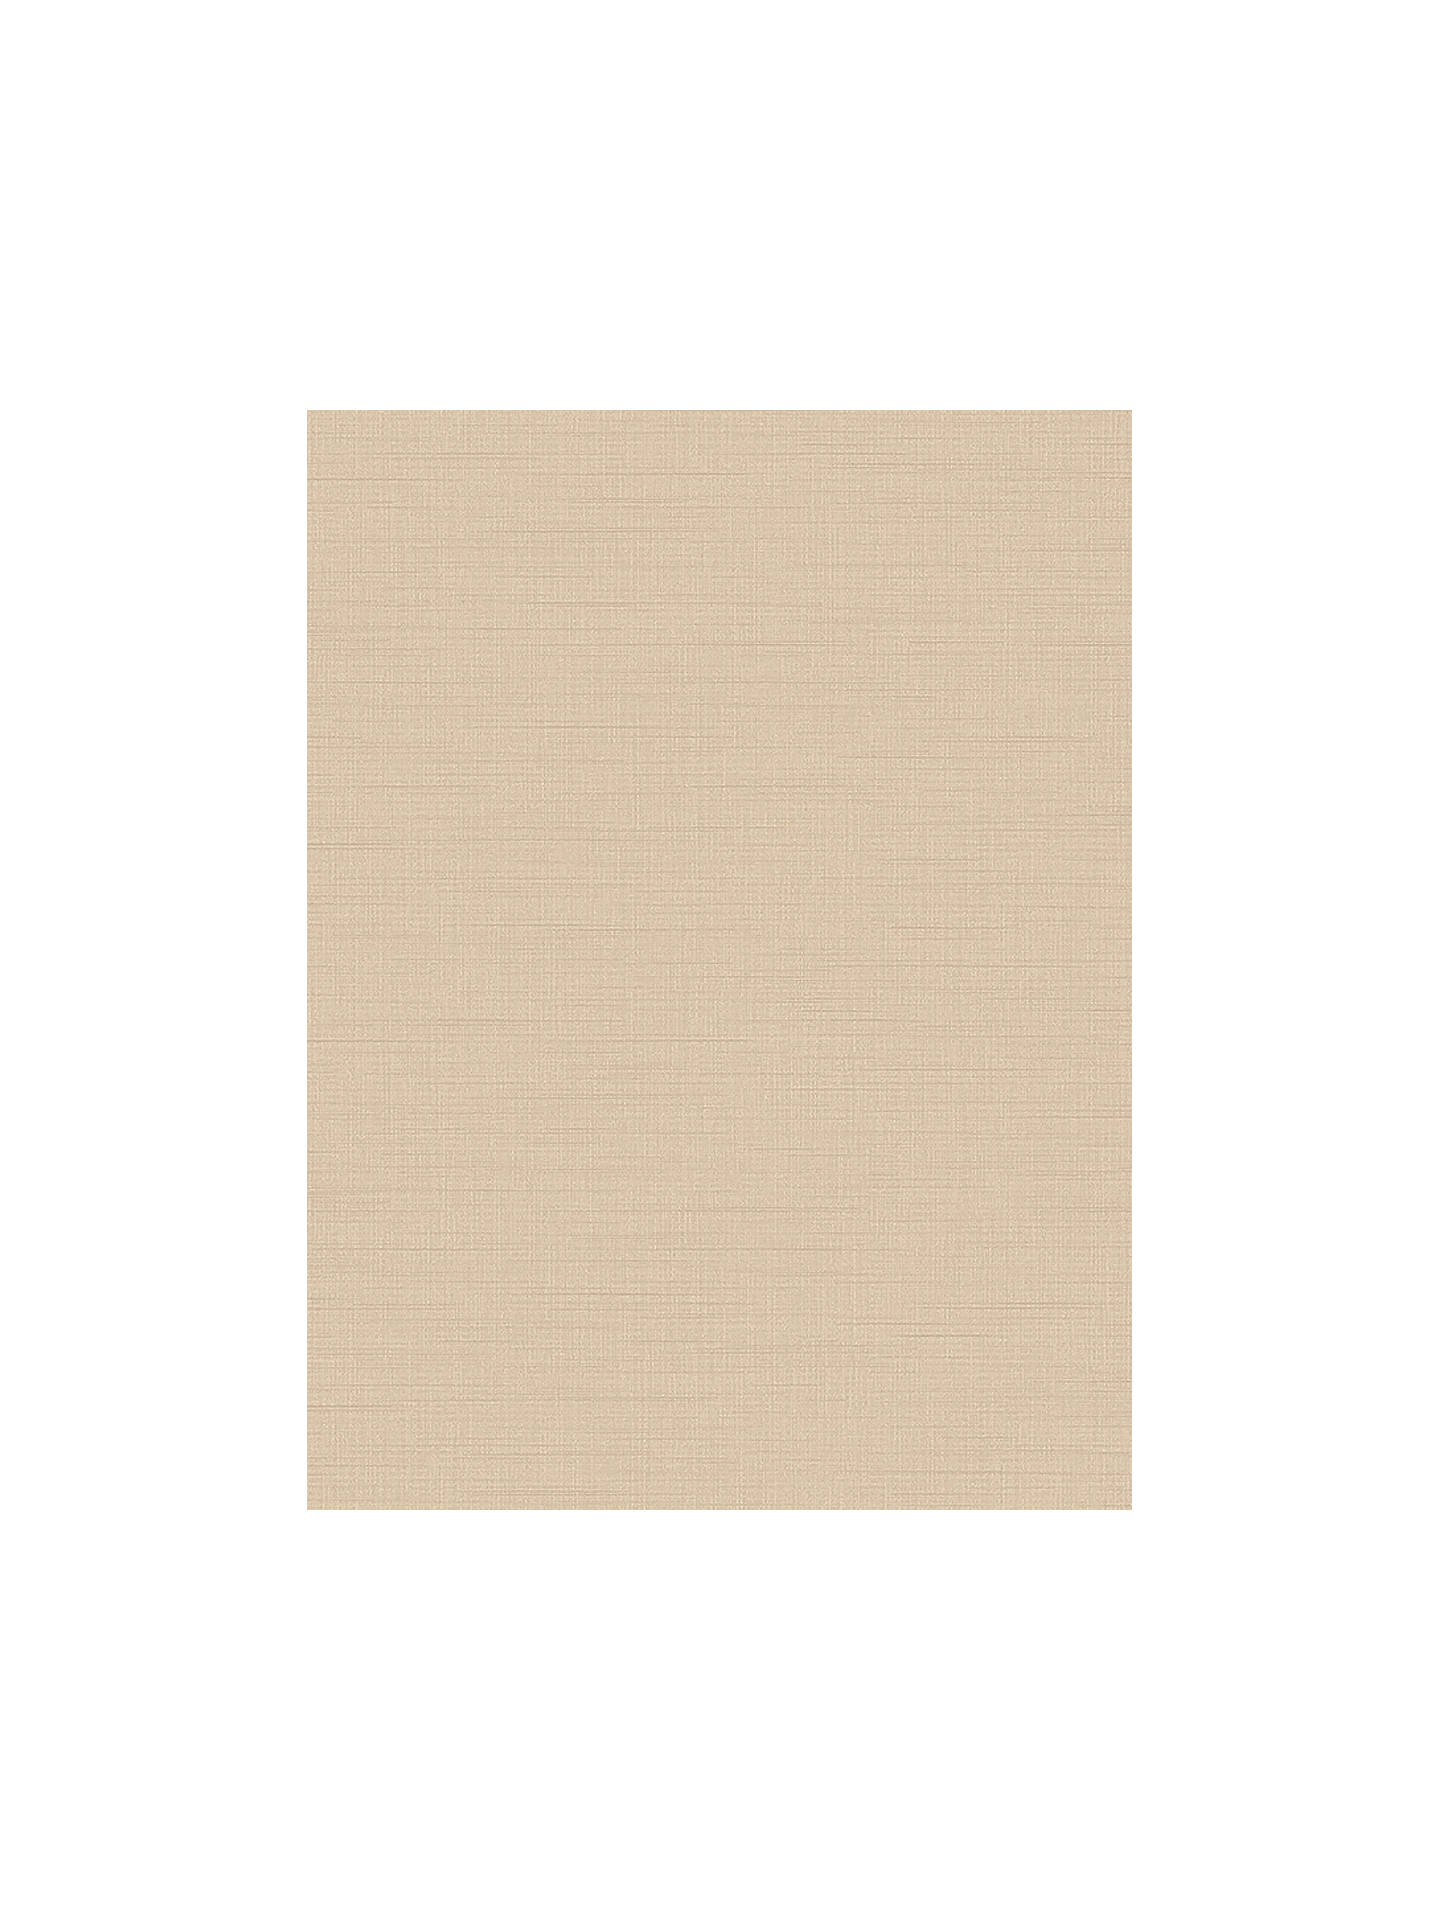 Buy Engblad & Co Raw Silk Wallpaper, 4571 Online at johnlewis.com